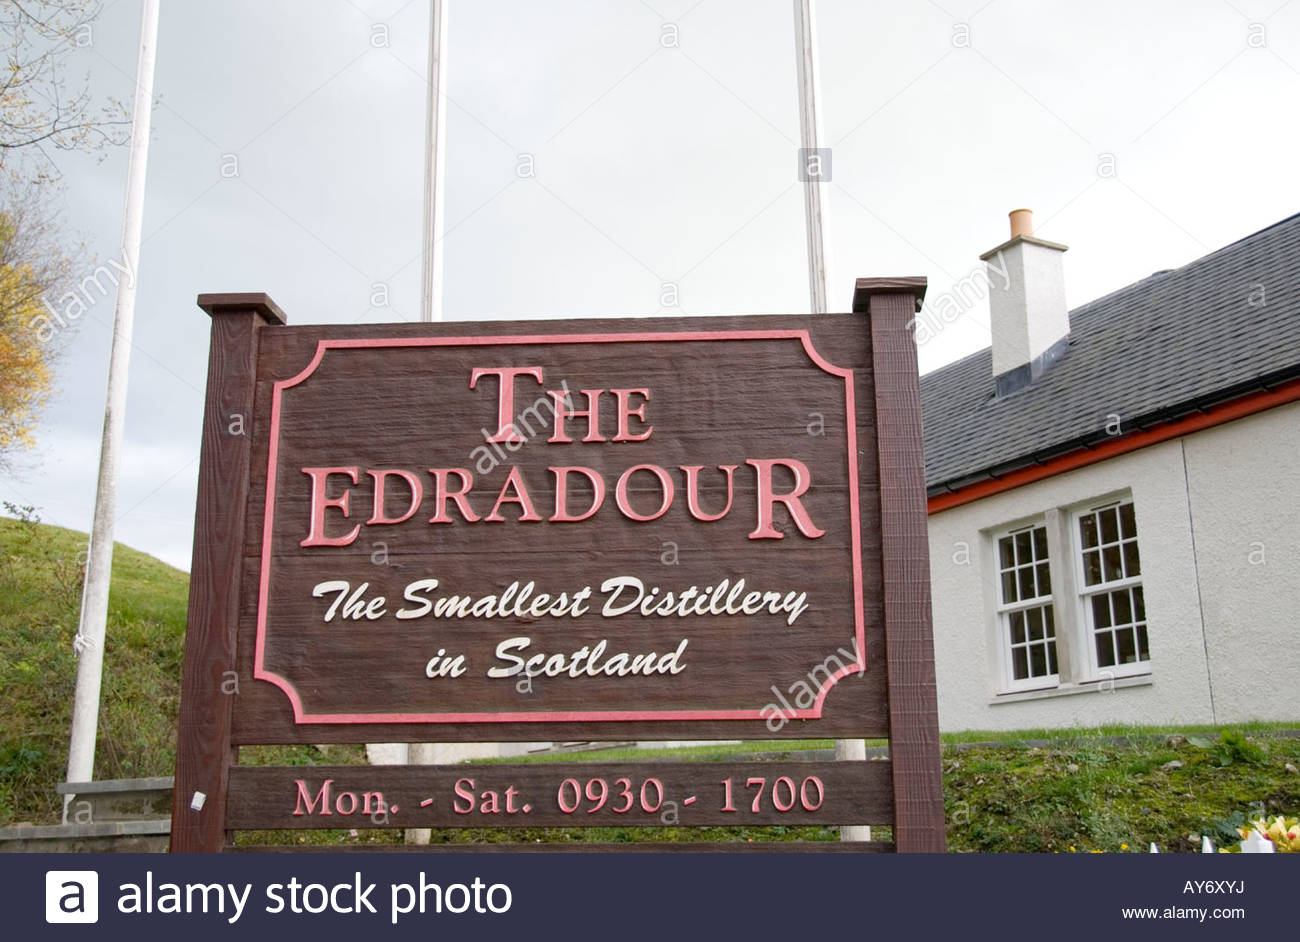 Edradour Distillery Pitlochry, Sign at entrance of Edradour Distillery, Pitlochry, Scotland Stock ...